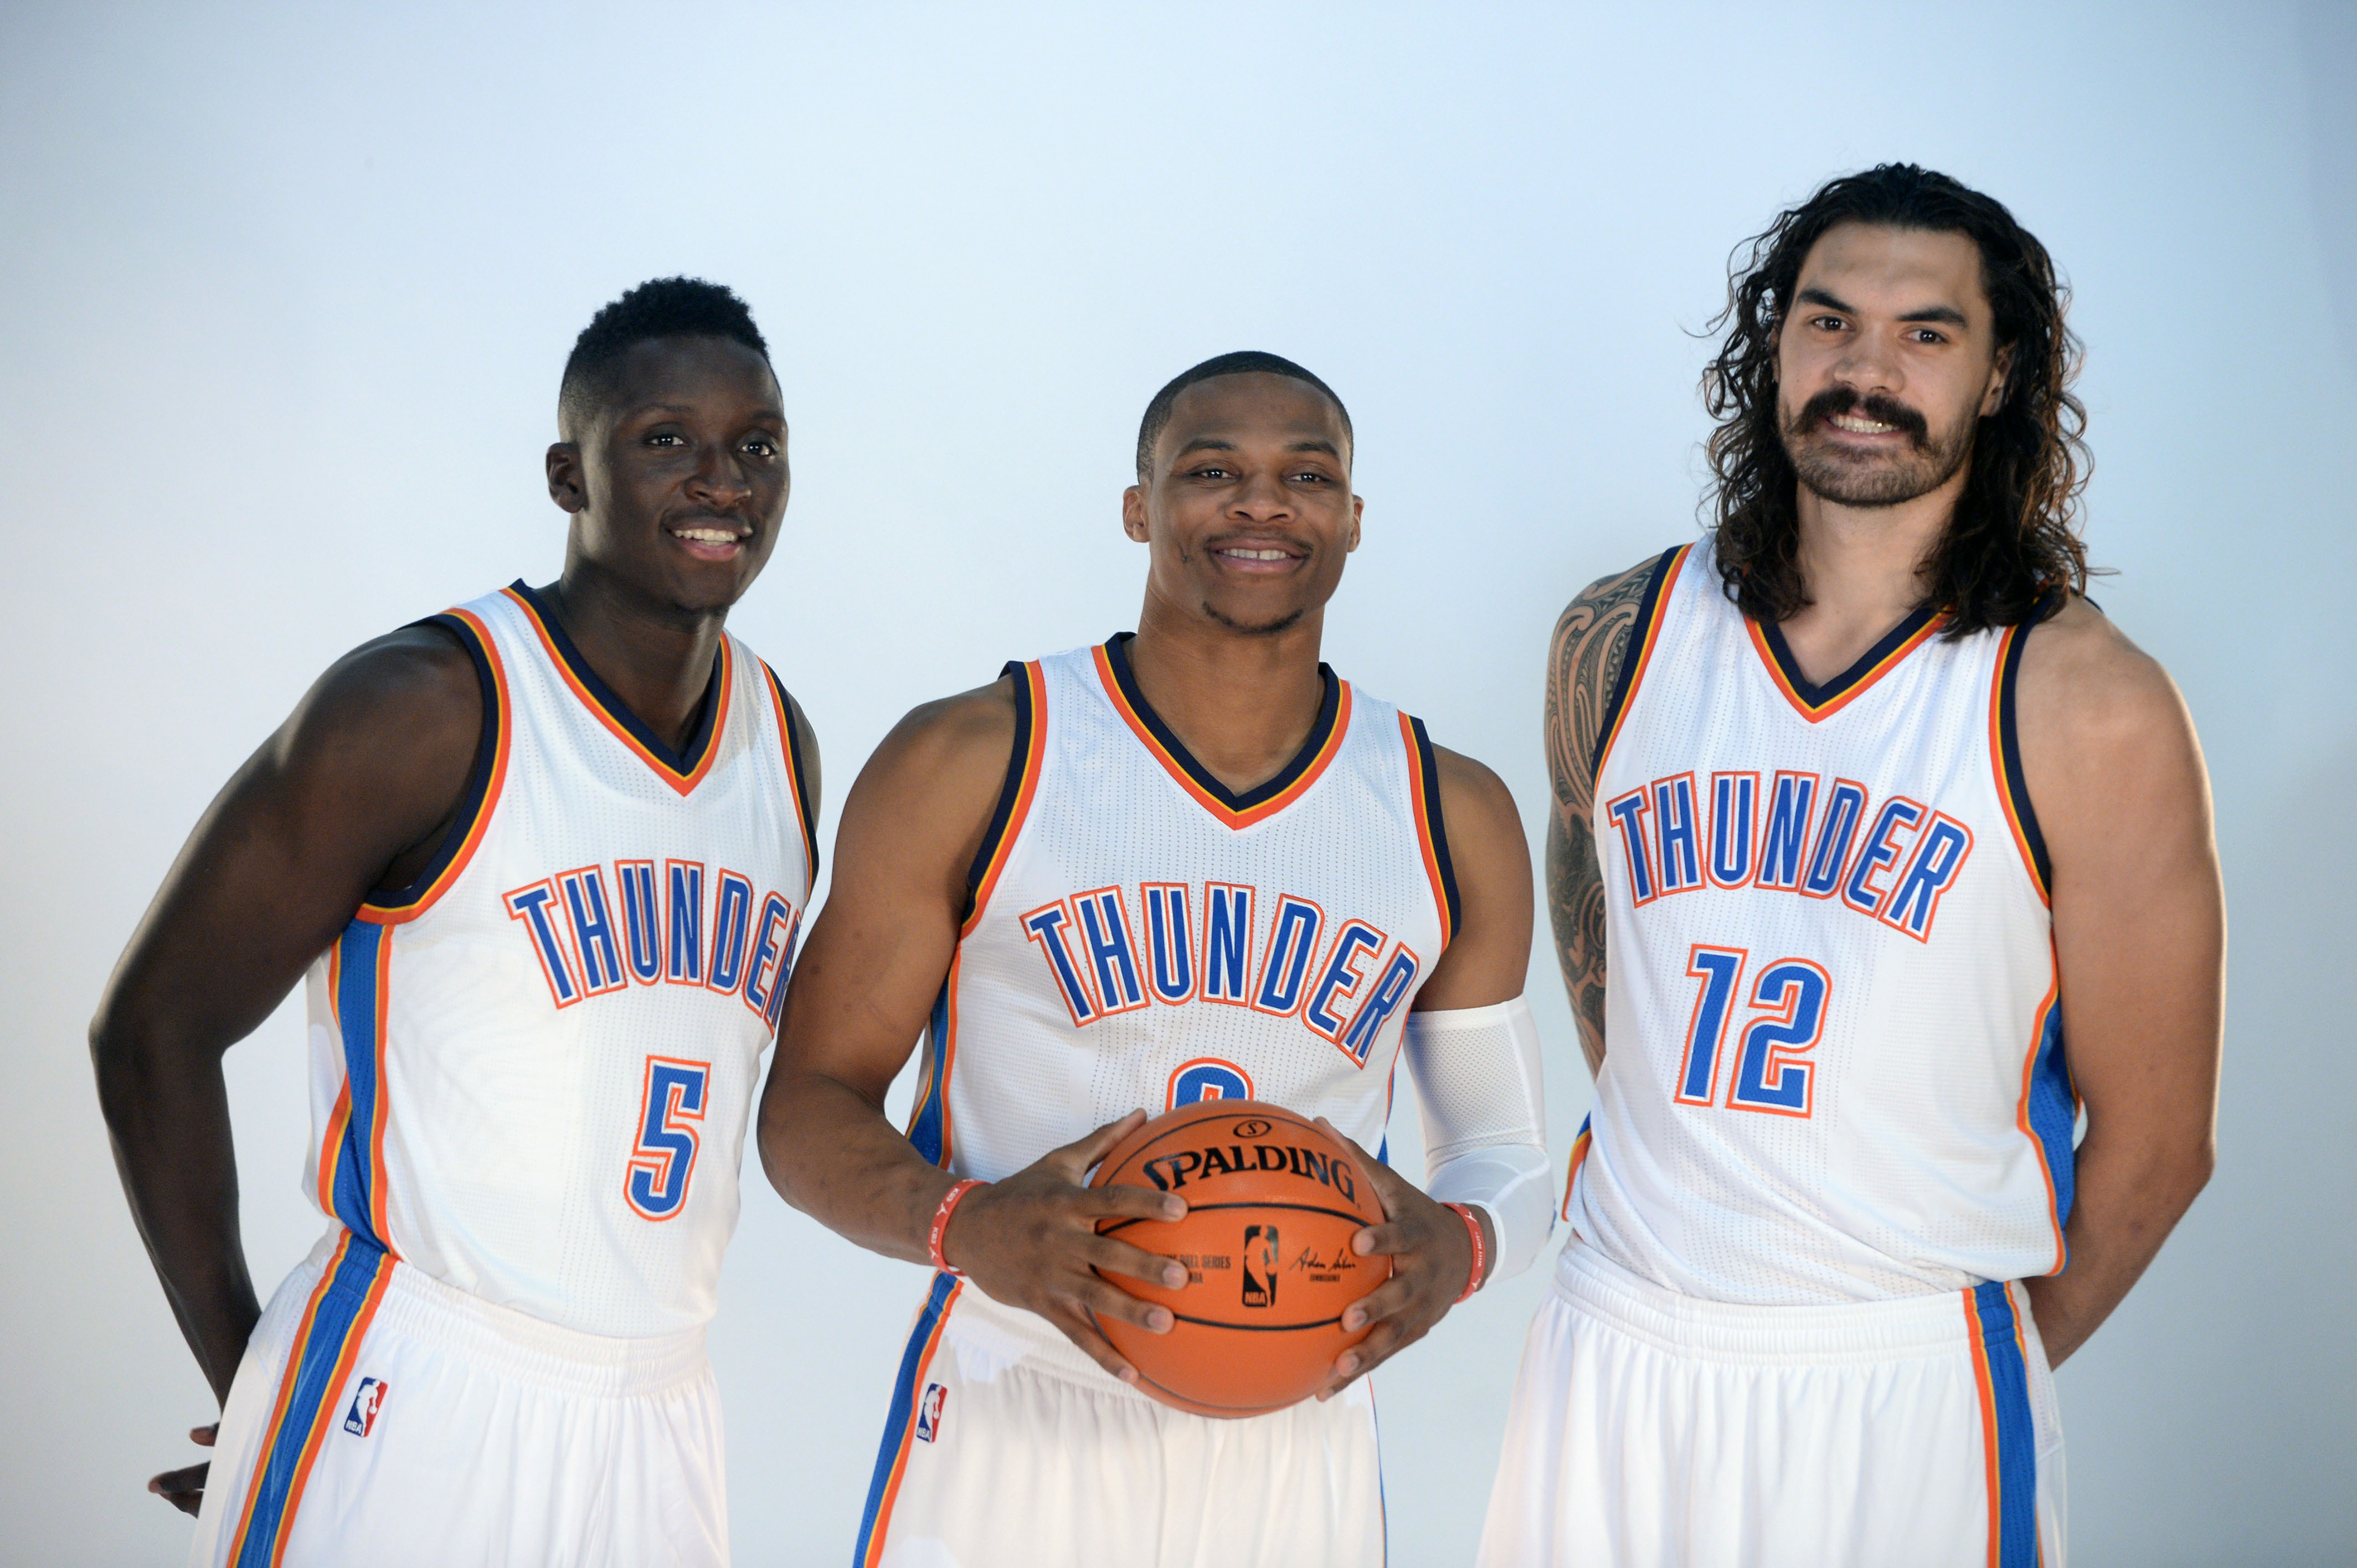 The OKC Thunder have built their future on assumptions f42b6f5af2f